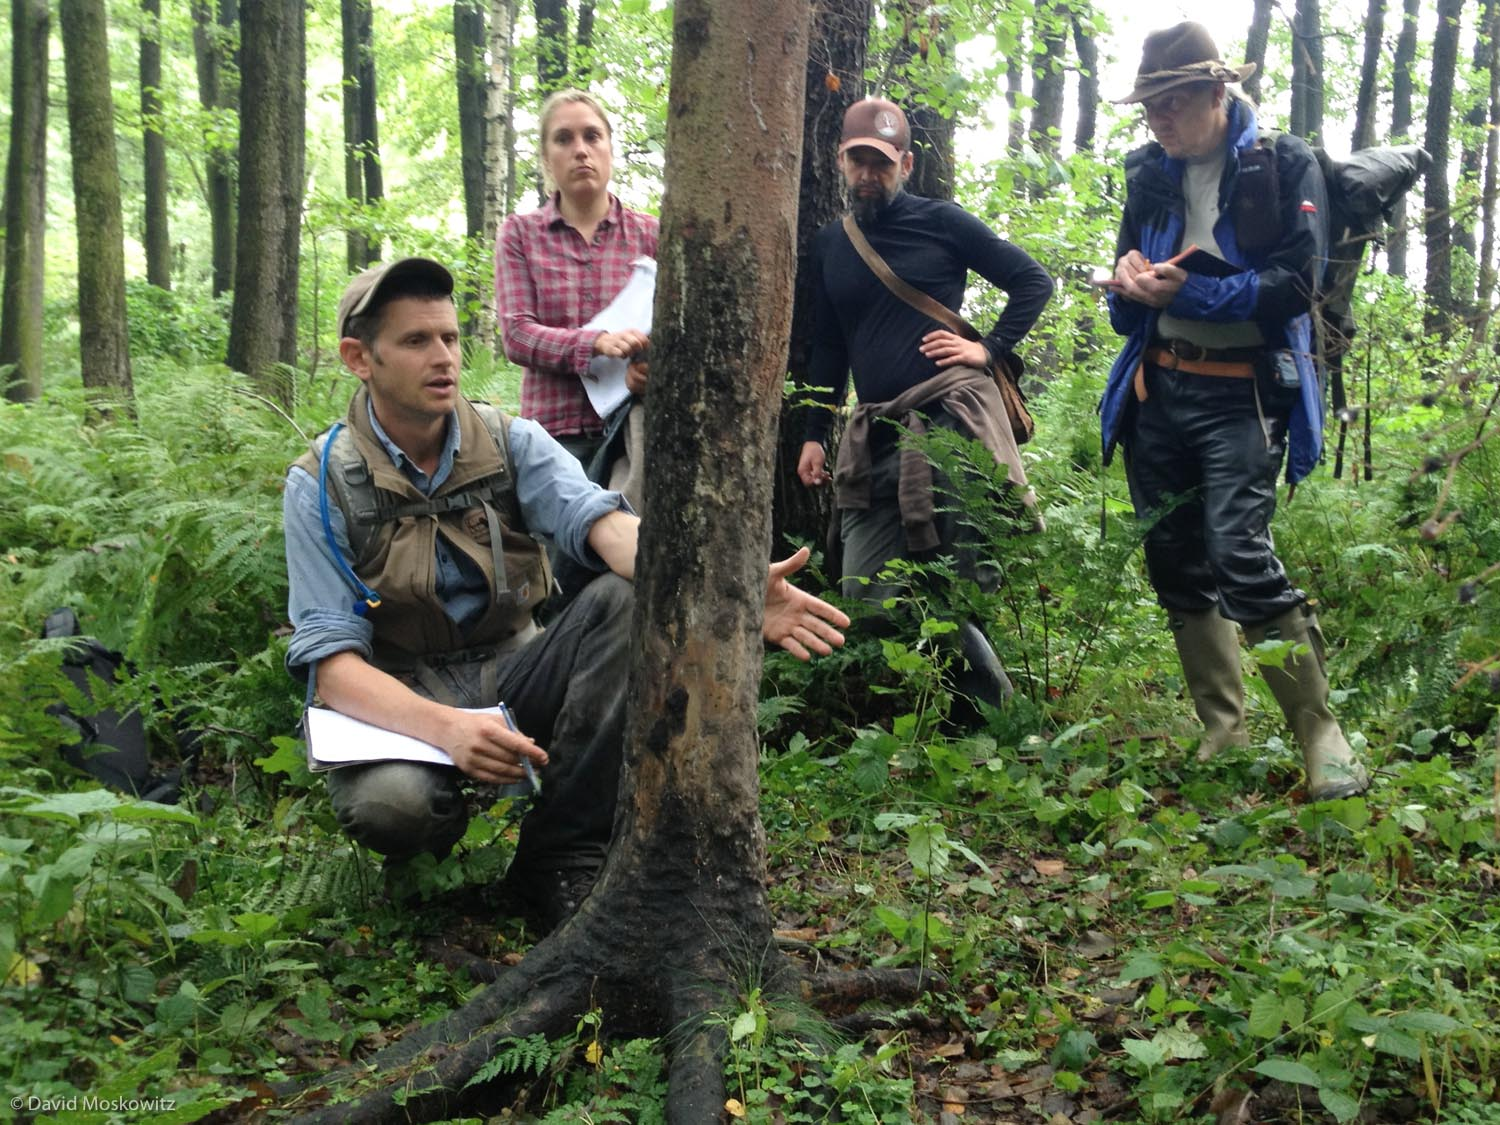 Casey McFarland discusses the sign left by a wild boar rubbing on the base of a tree in the Saxony region of Germany during a Track and Sign Certification event.